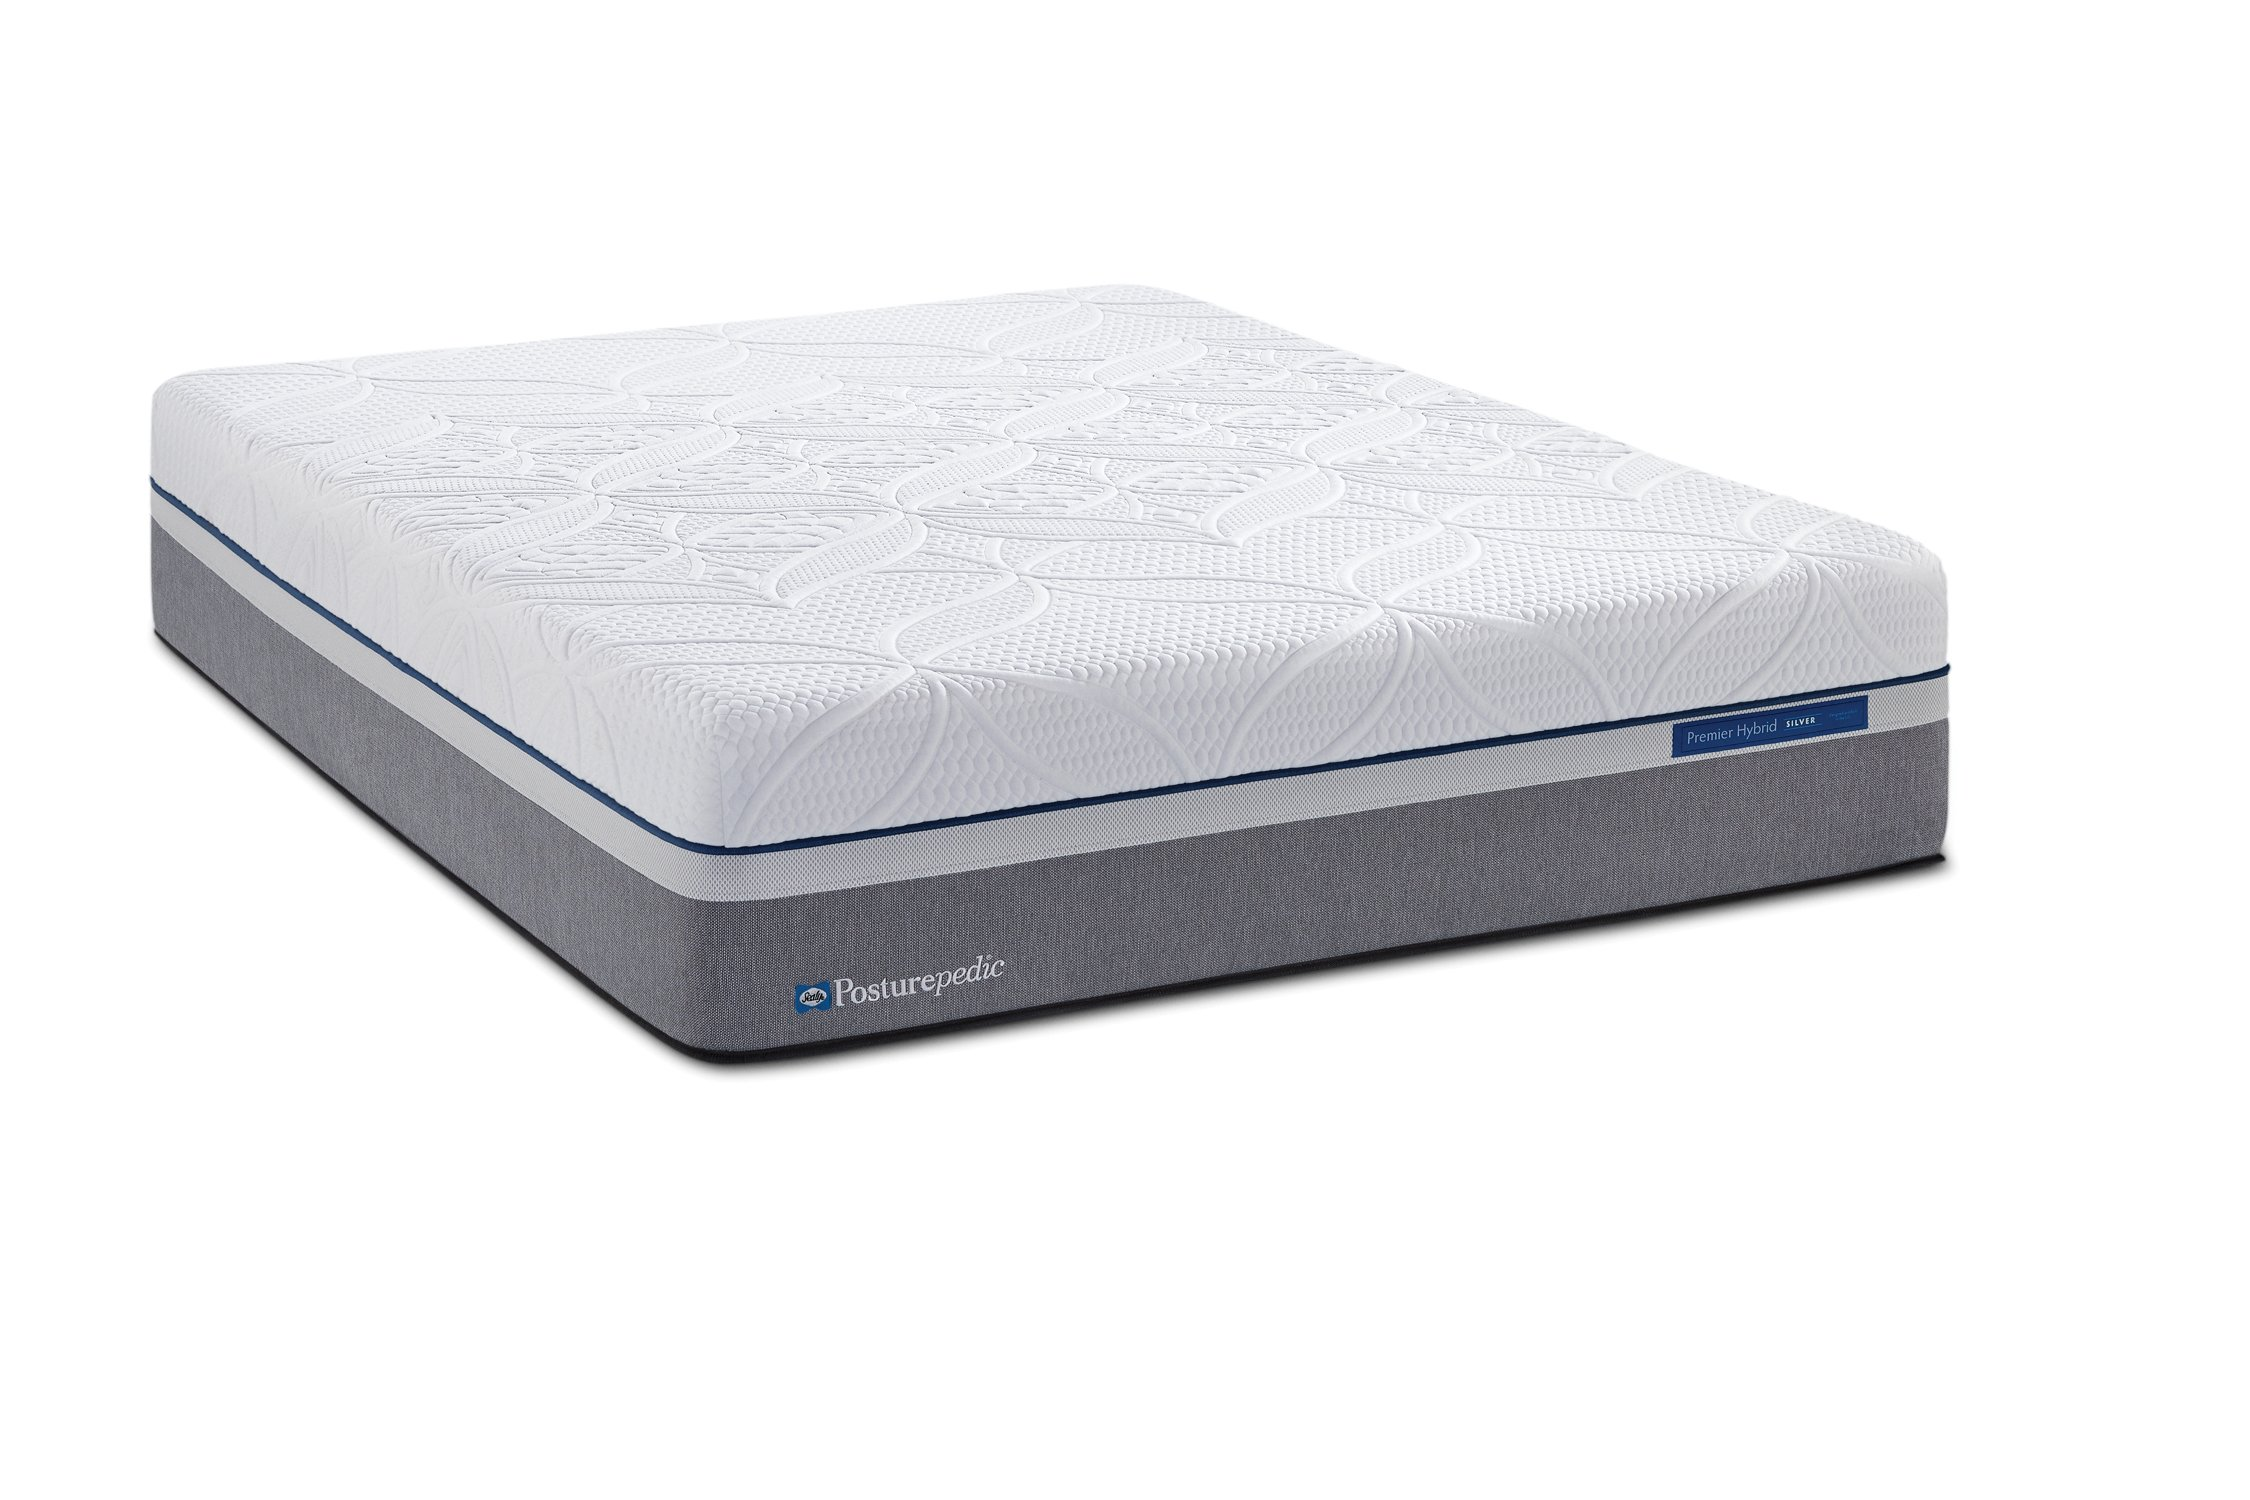 Sealy Posturepedic Hybrid Silver Plush Mattress, Twin XL